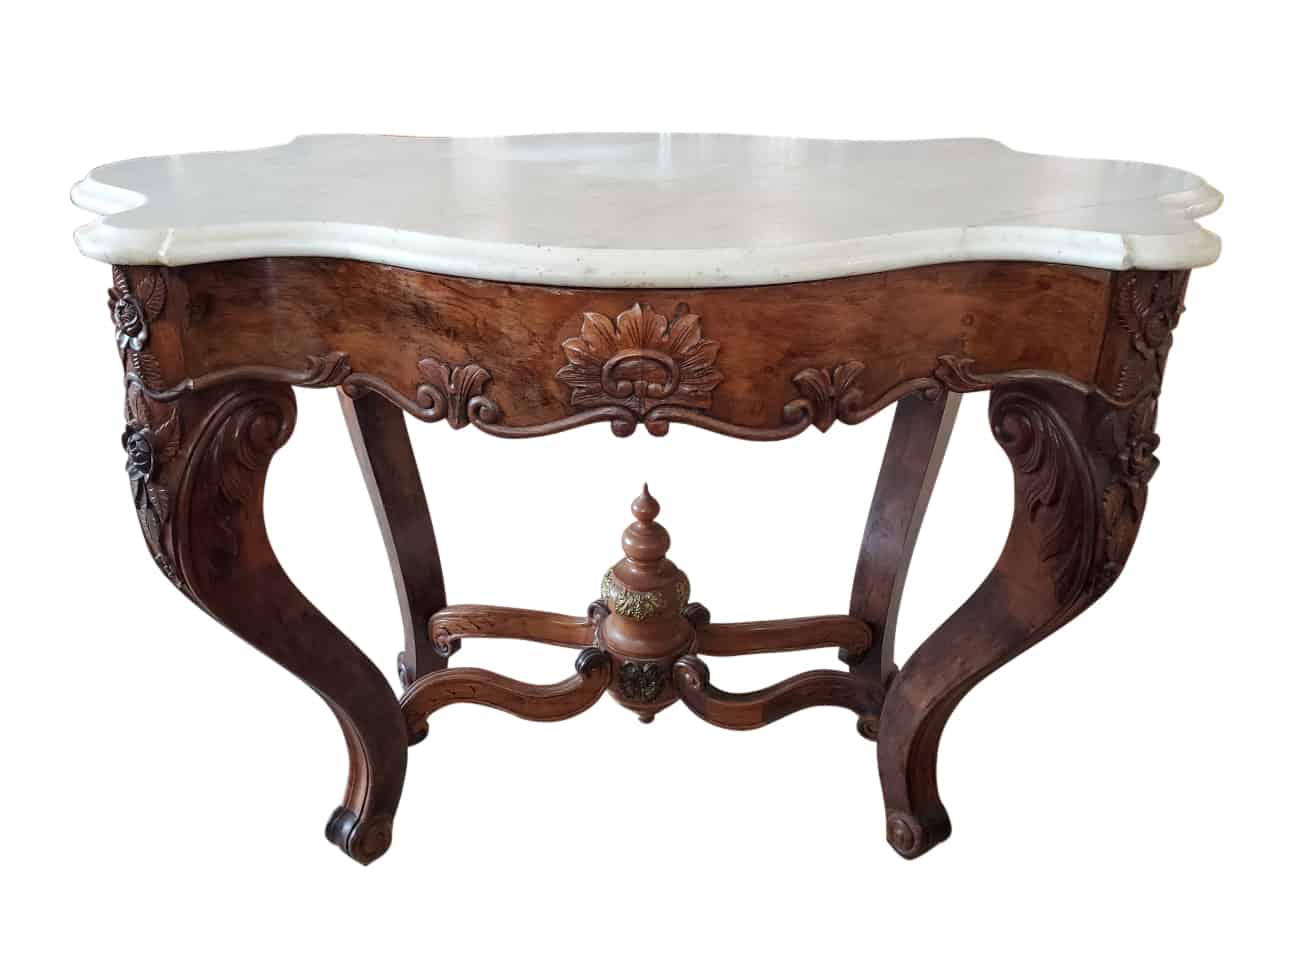 Marble Top Oval Table 30 H